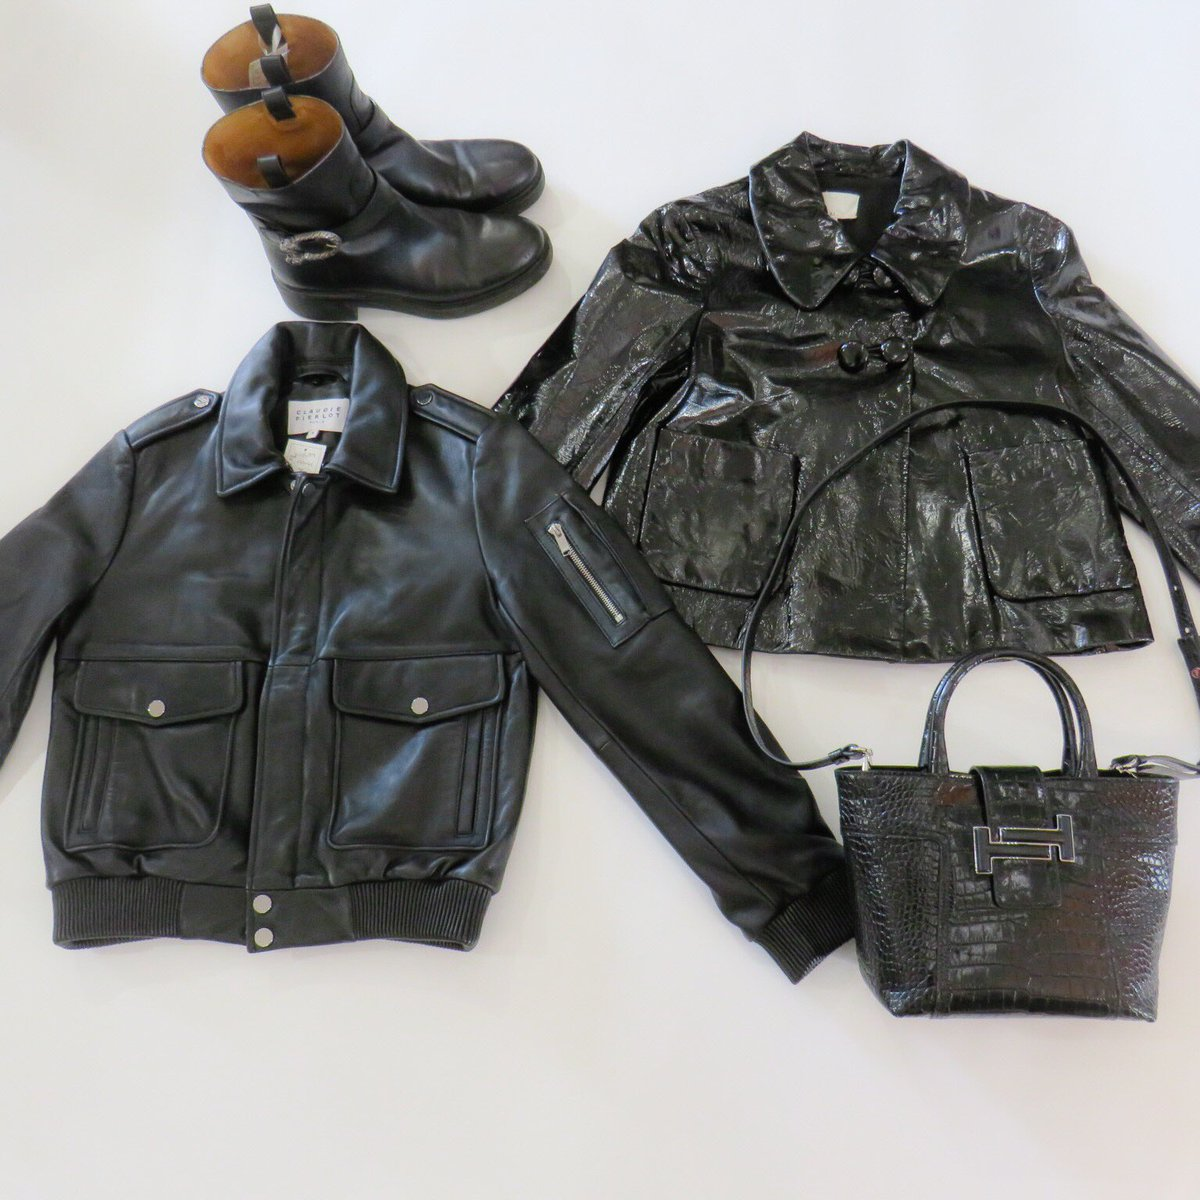 344e1a891 ... jacket (£80, S) #gucci biker boots (£250, 7) #tods small double T  leather croc stamped bag £650 new with tags (rrp £920) #ootdpic.twitter .com/OoSQ8z46AV